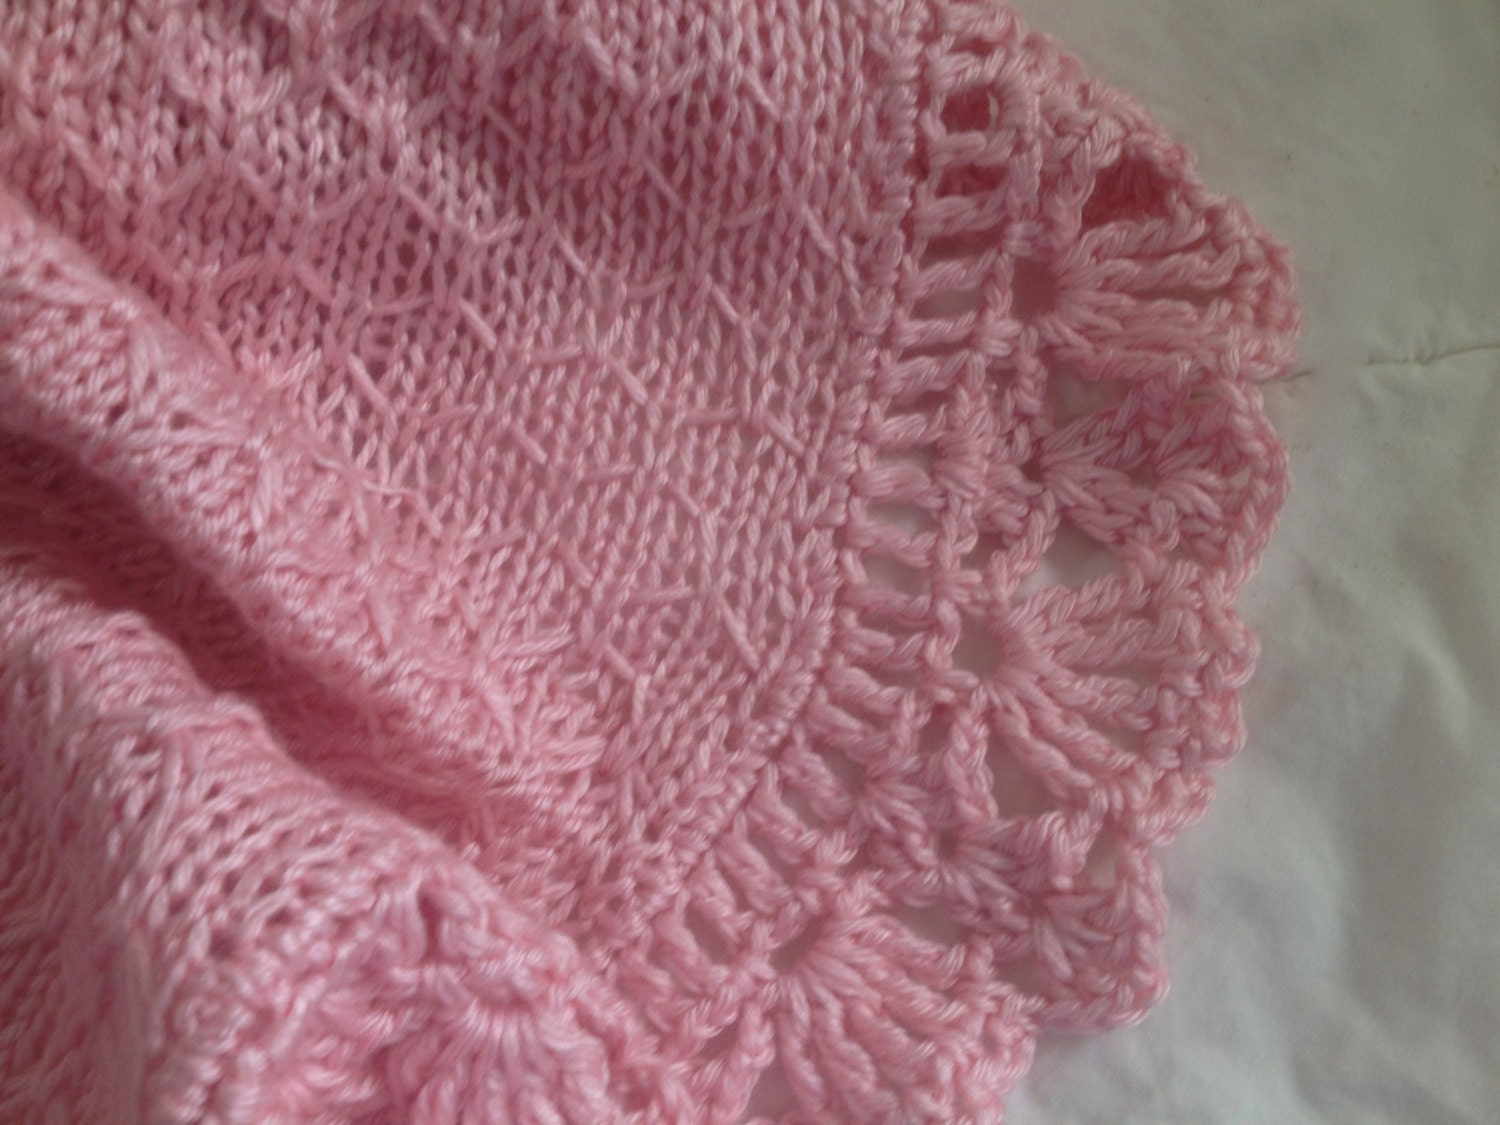 Knitted Blanket Edging Pattern : Hand Knit Baby Blanket in Honeycomb Pattern with Ruffled lace